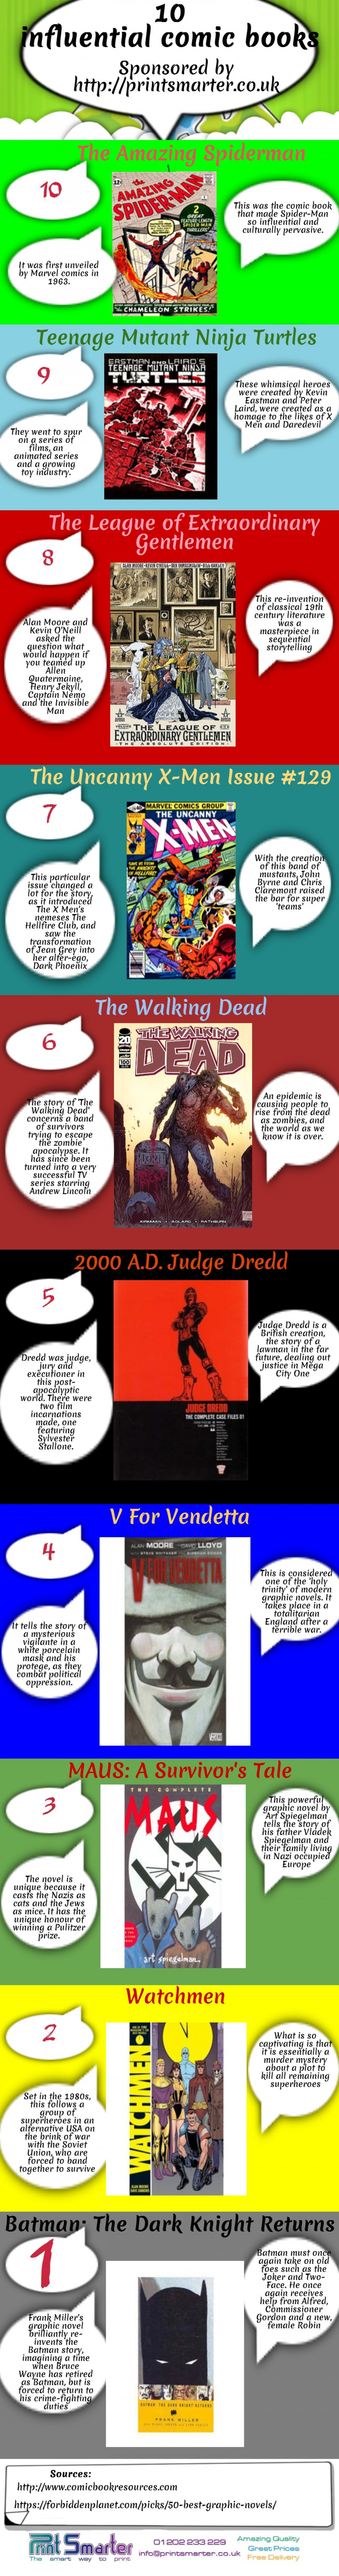 10 influential comic books & graphic novels Infographic